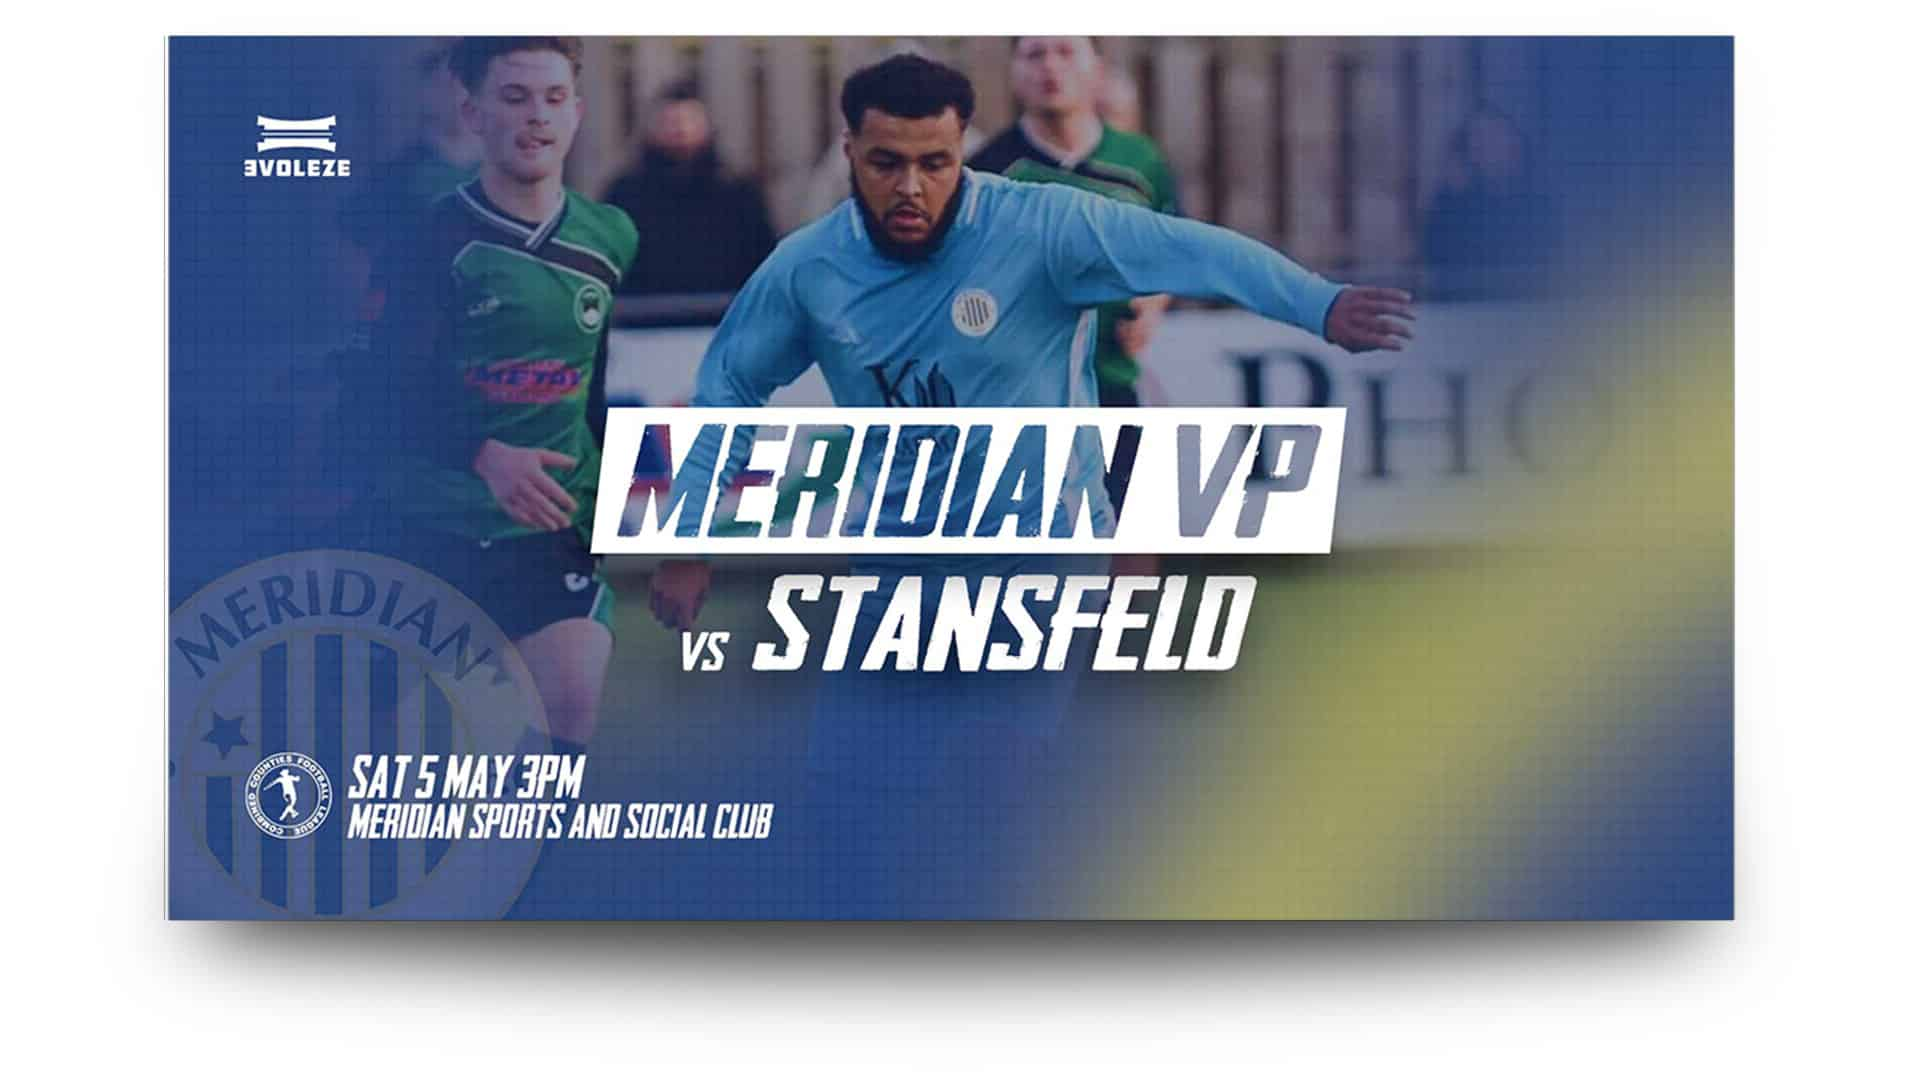 meridian vp fc matchday graphics